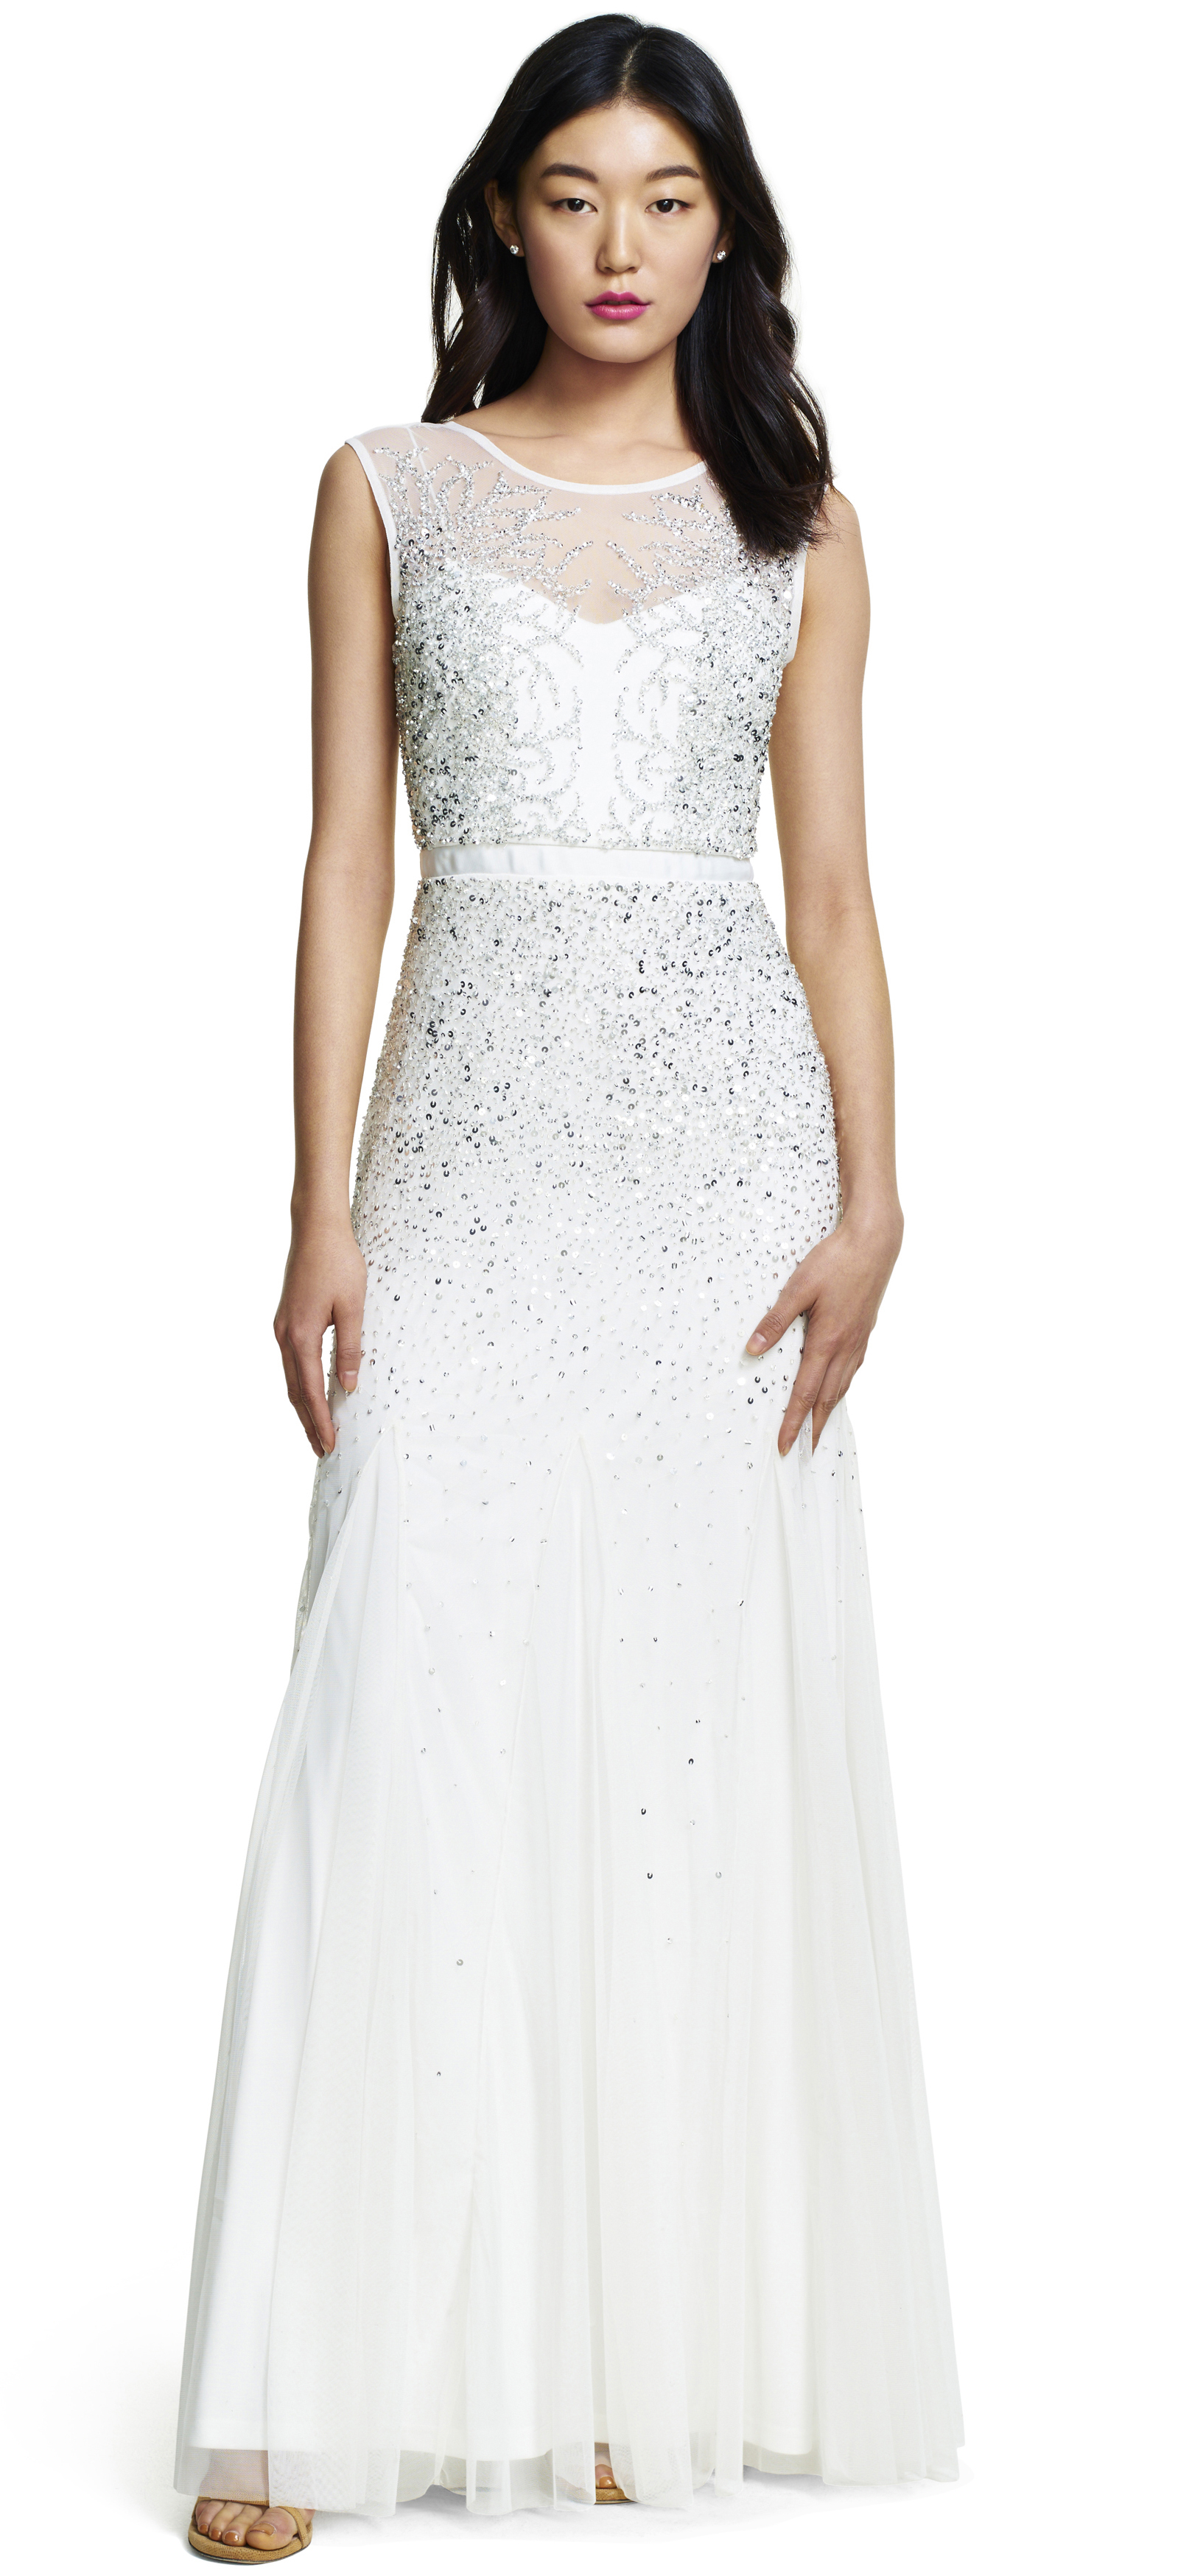 Adrianna papell long beaded gown with illusion neck in multicolor